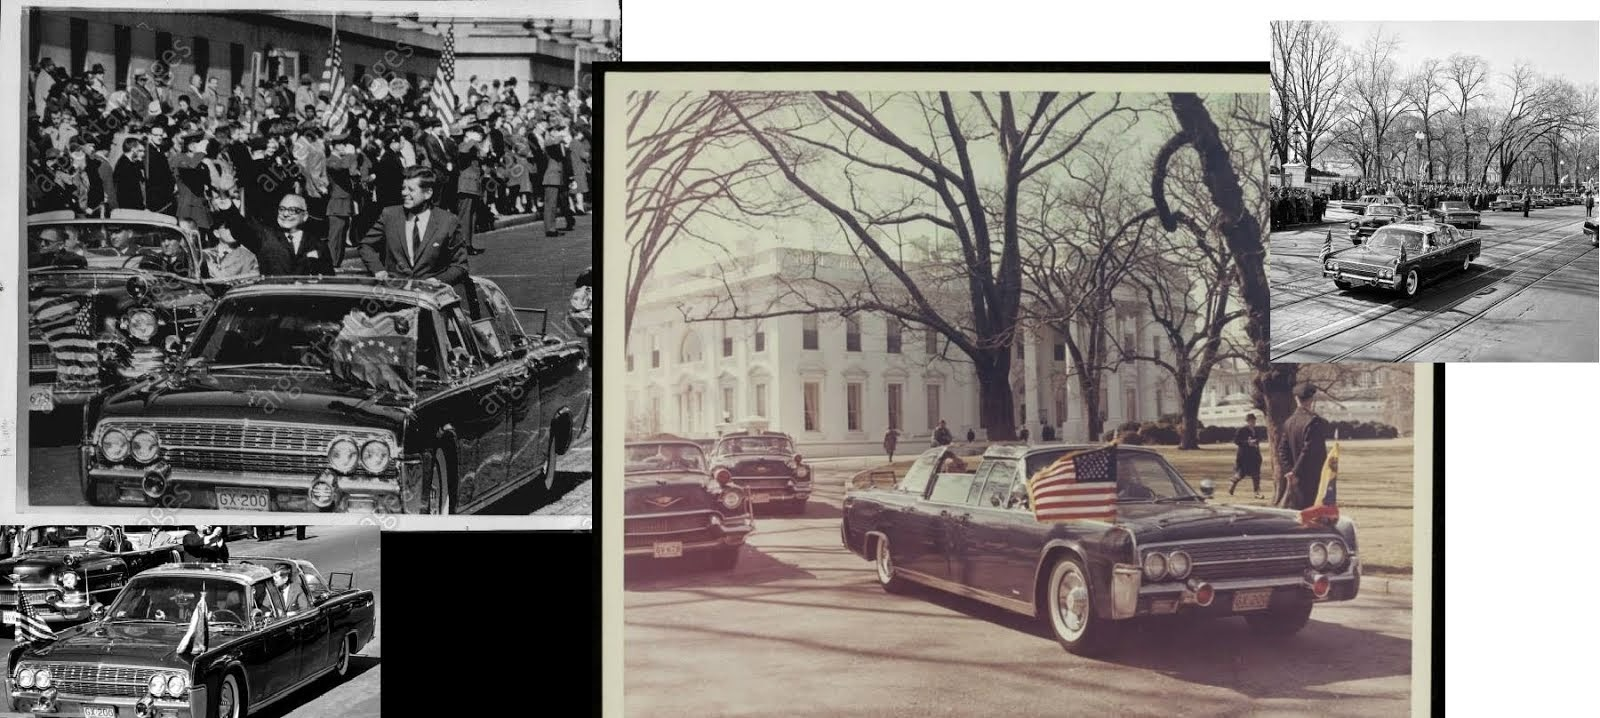 JFK bubbletop Washington, D.C. 2/20/63